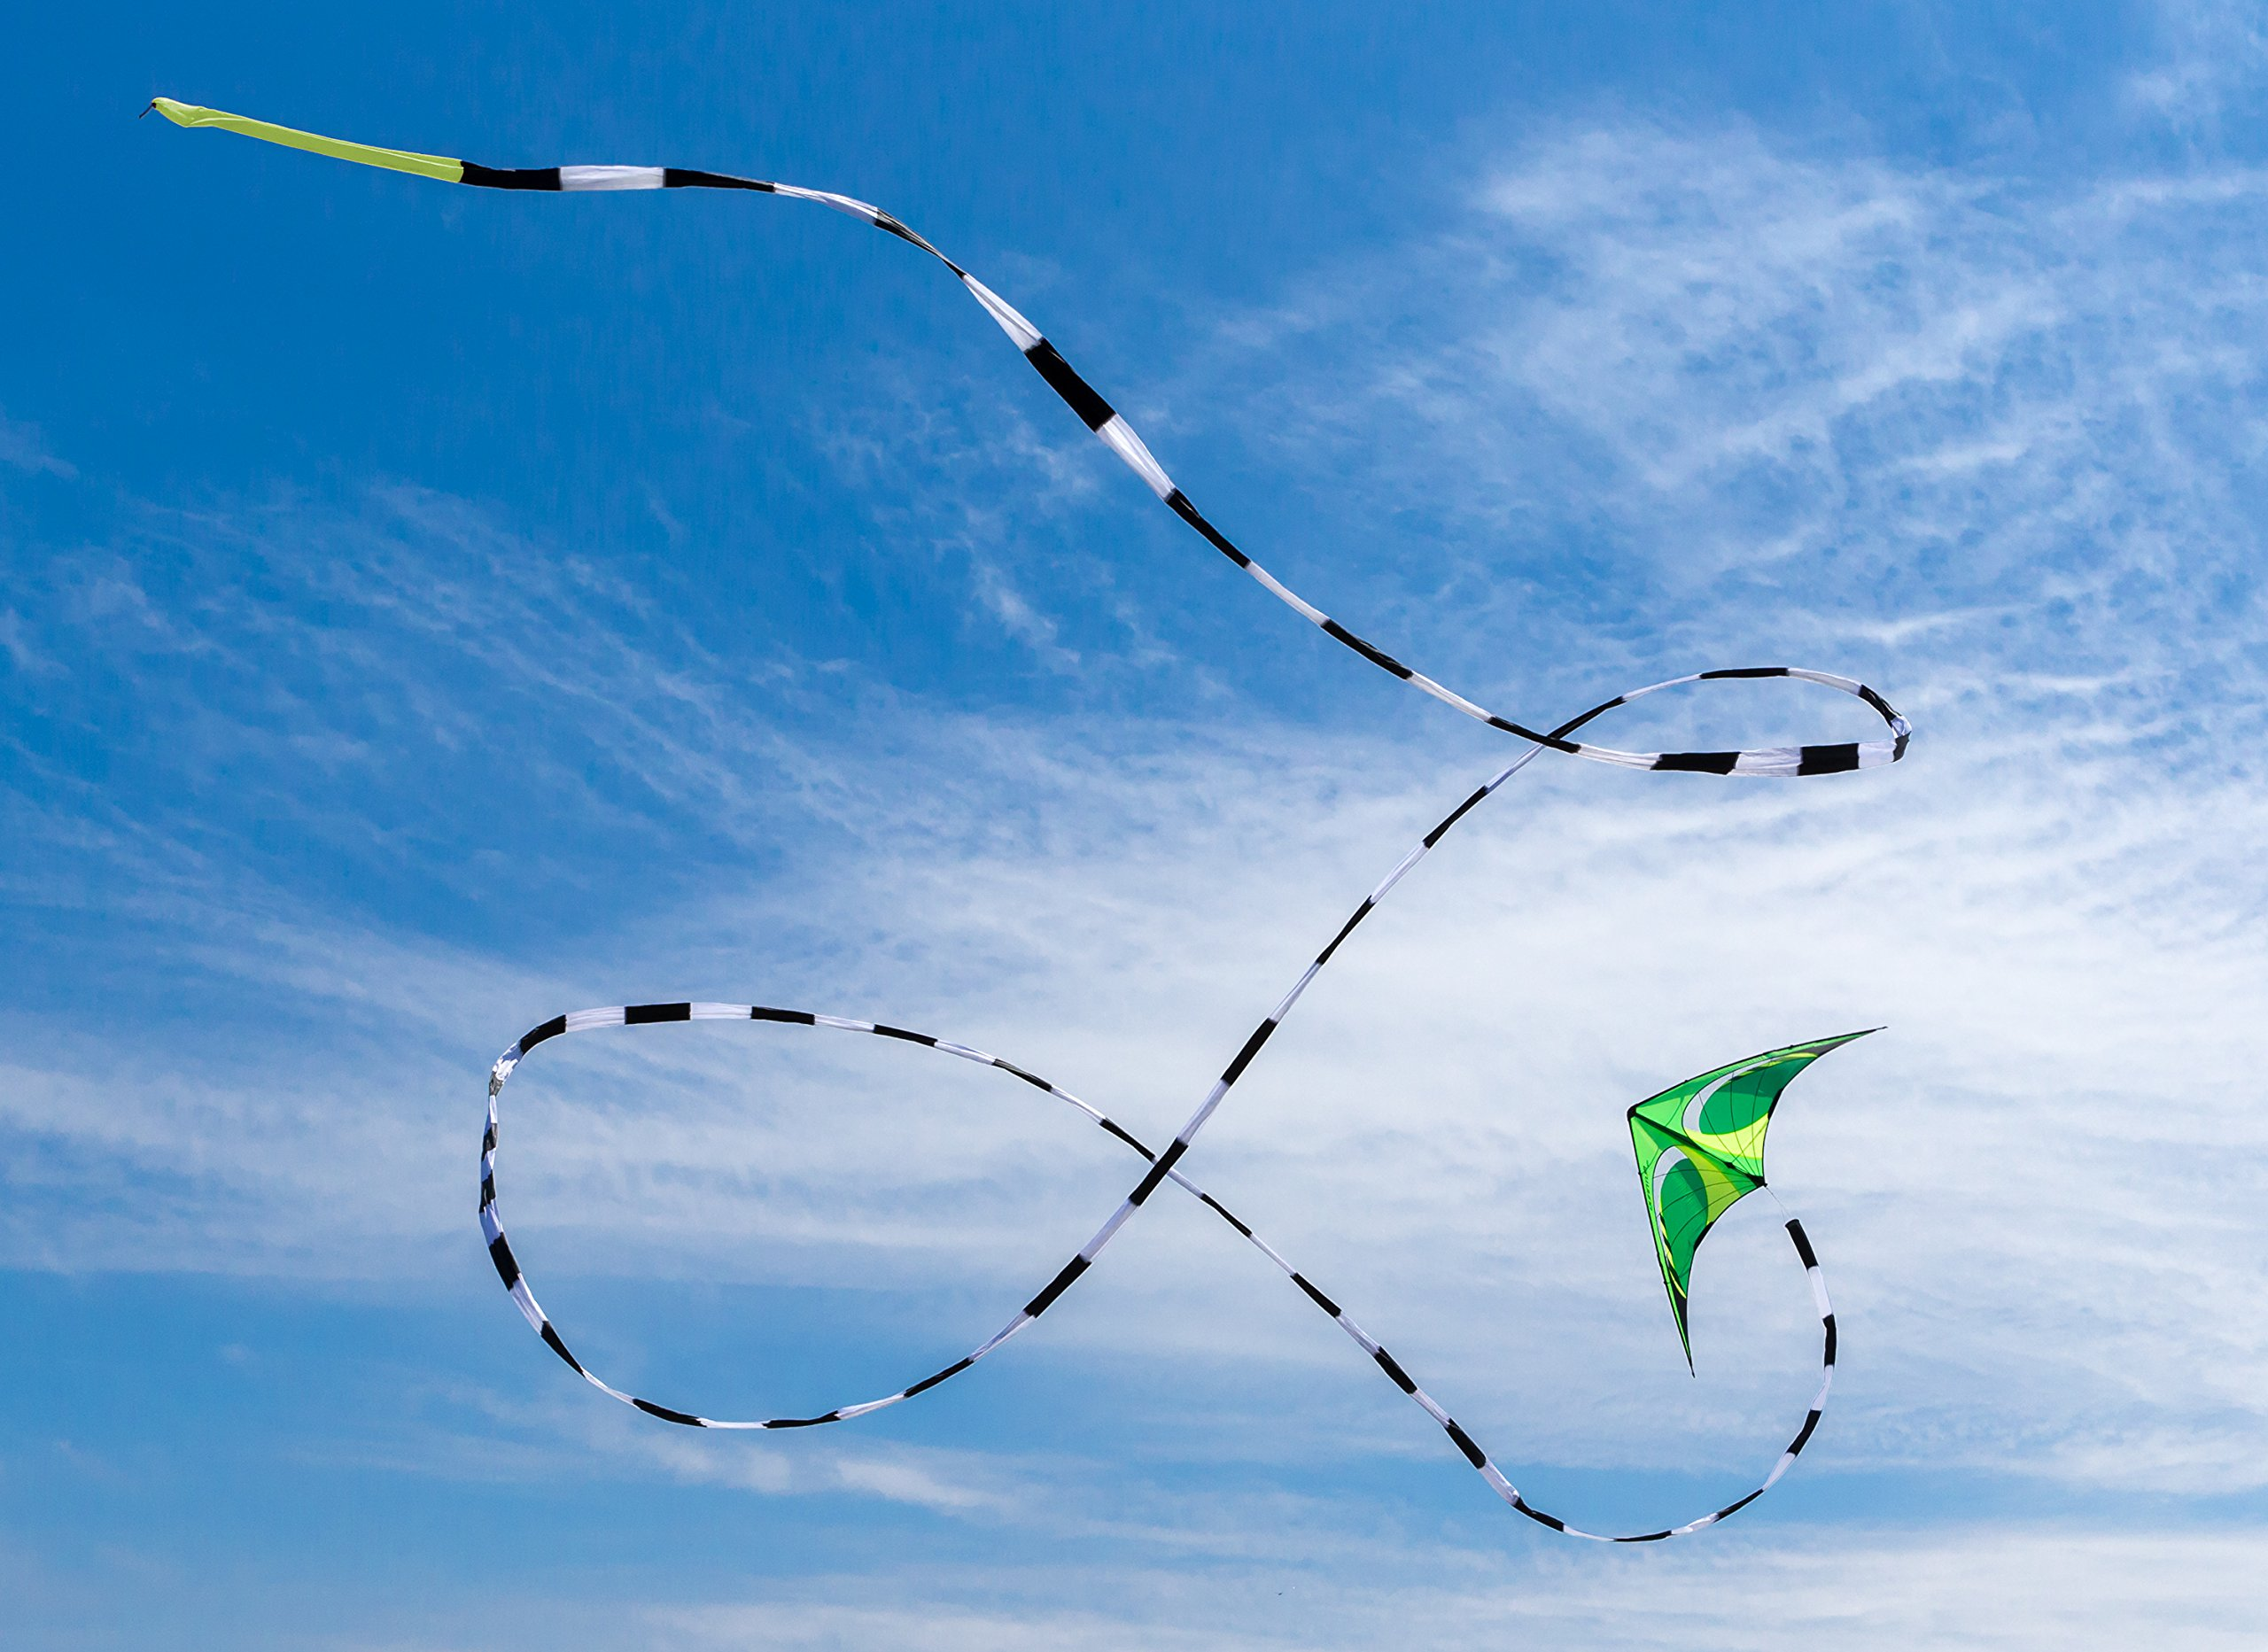 Prism 75-foot Kite Tube Tail by Prism Kite Technology (Image #4)